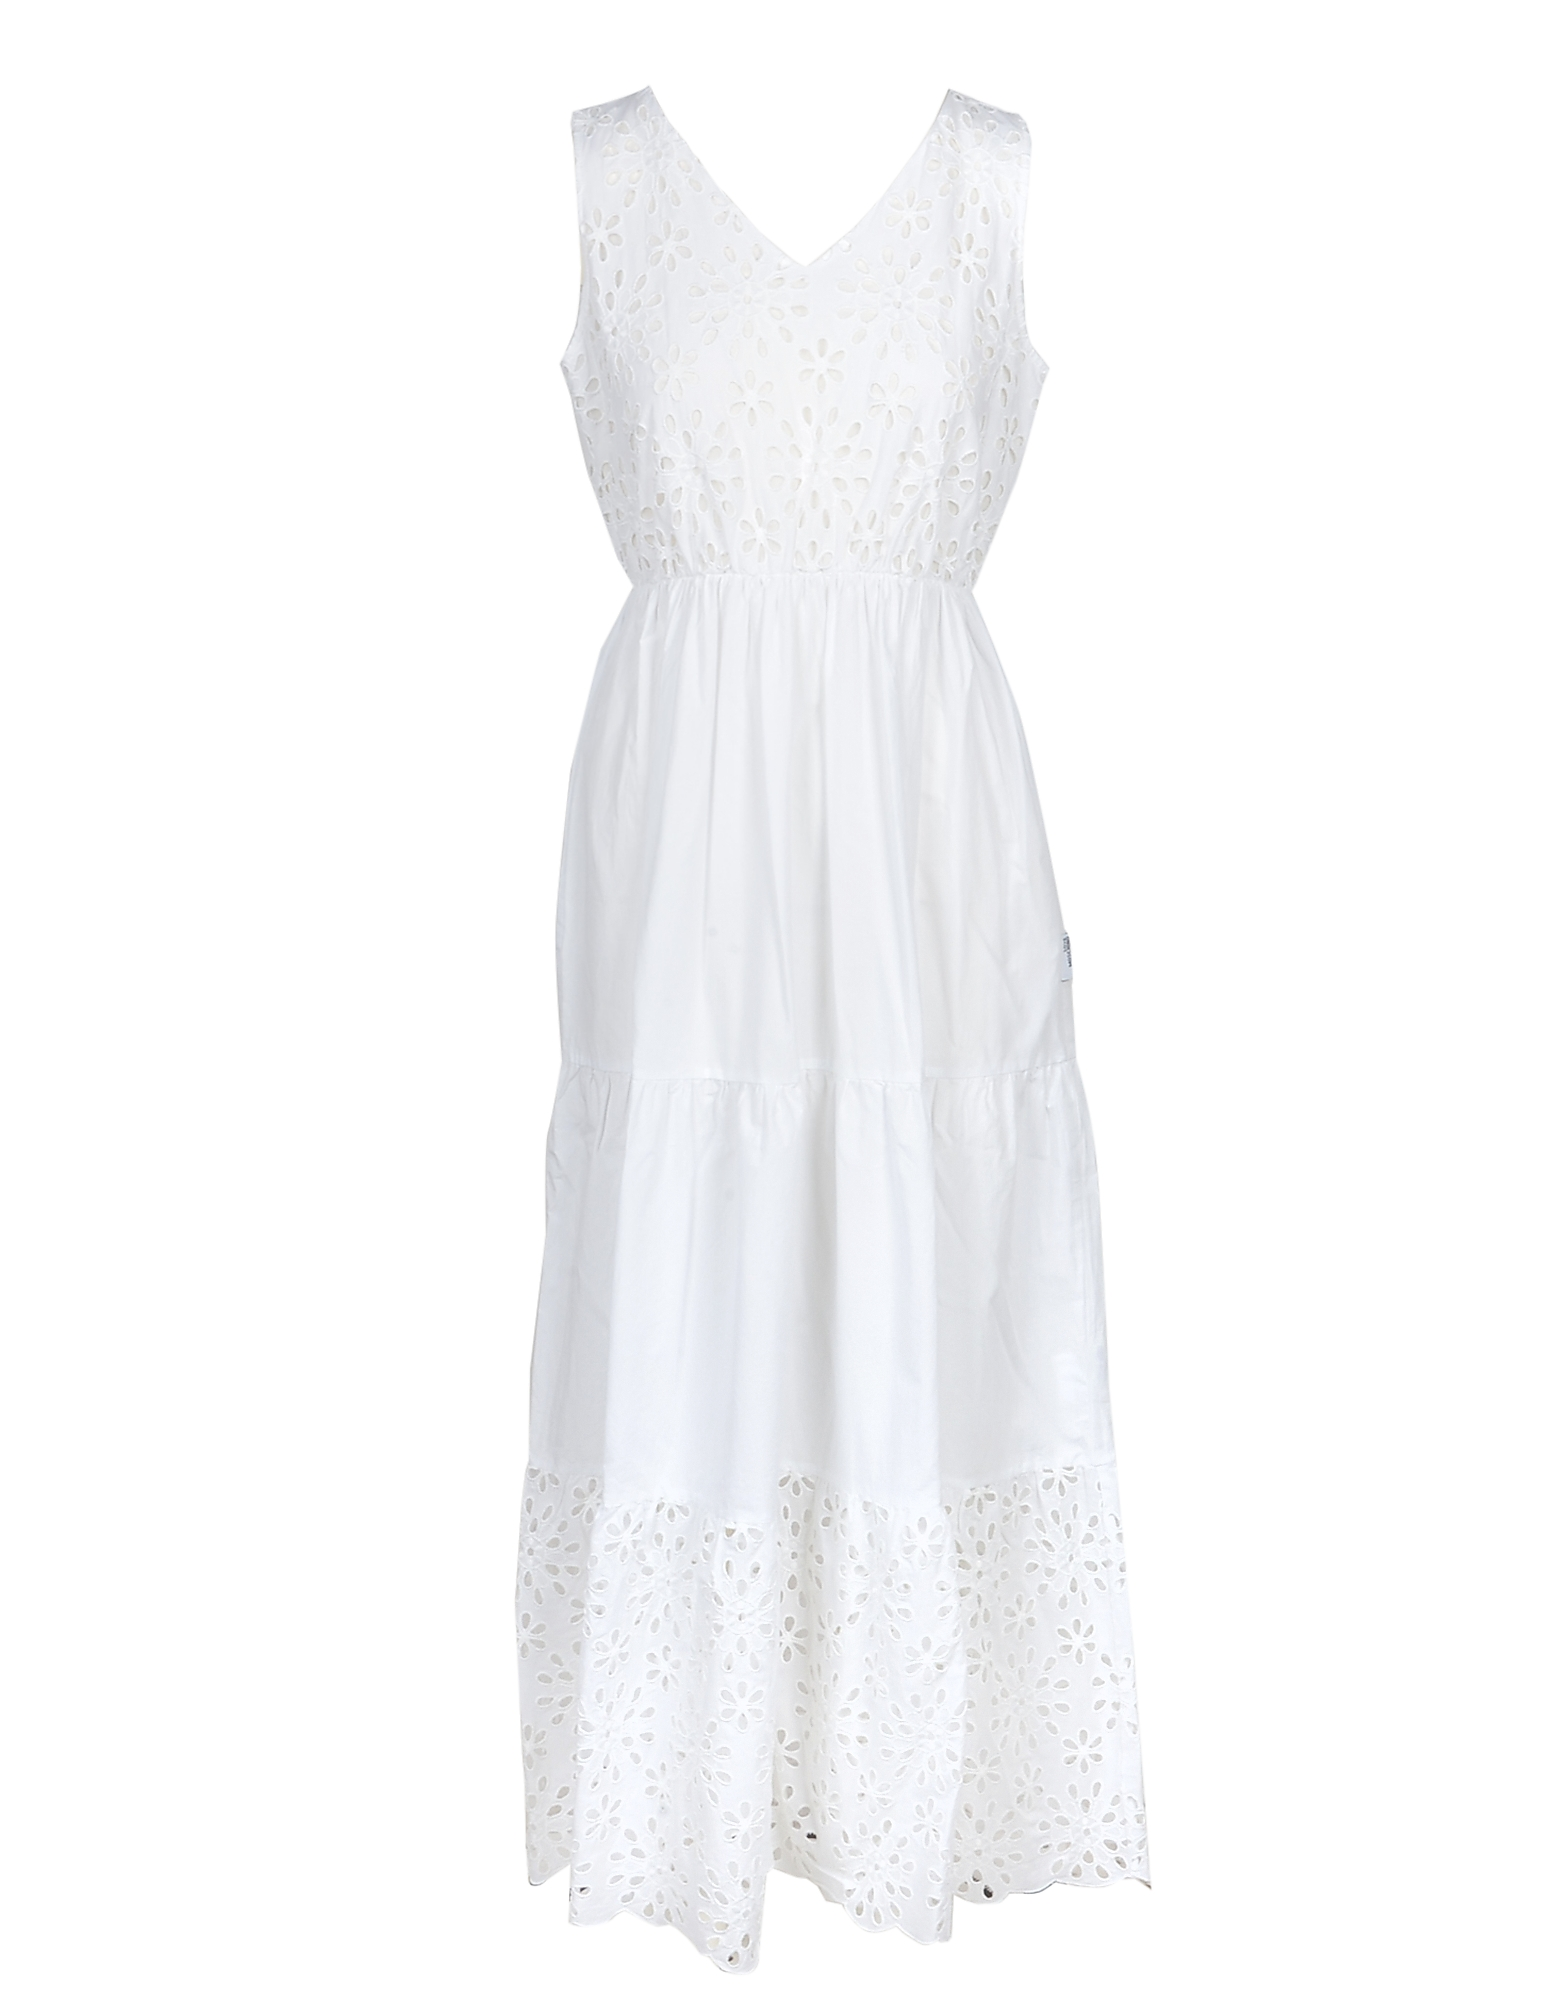 Love Moschino Designer Dresses & Jumpsuits, Women's White Dress